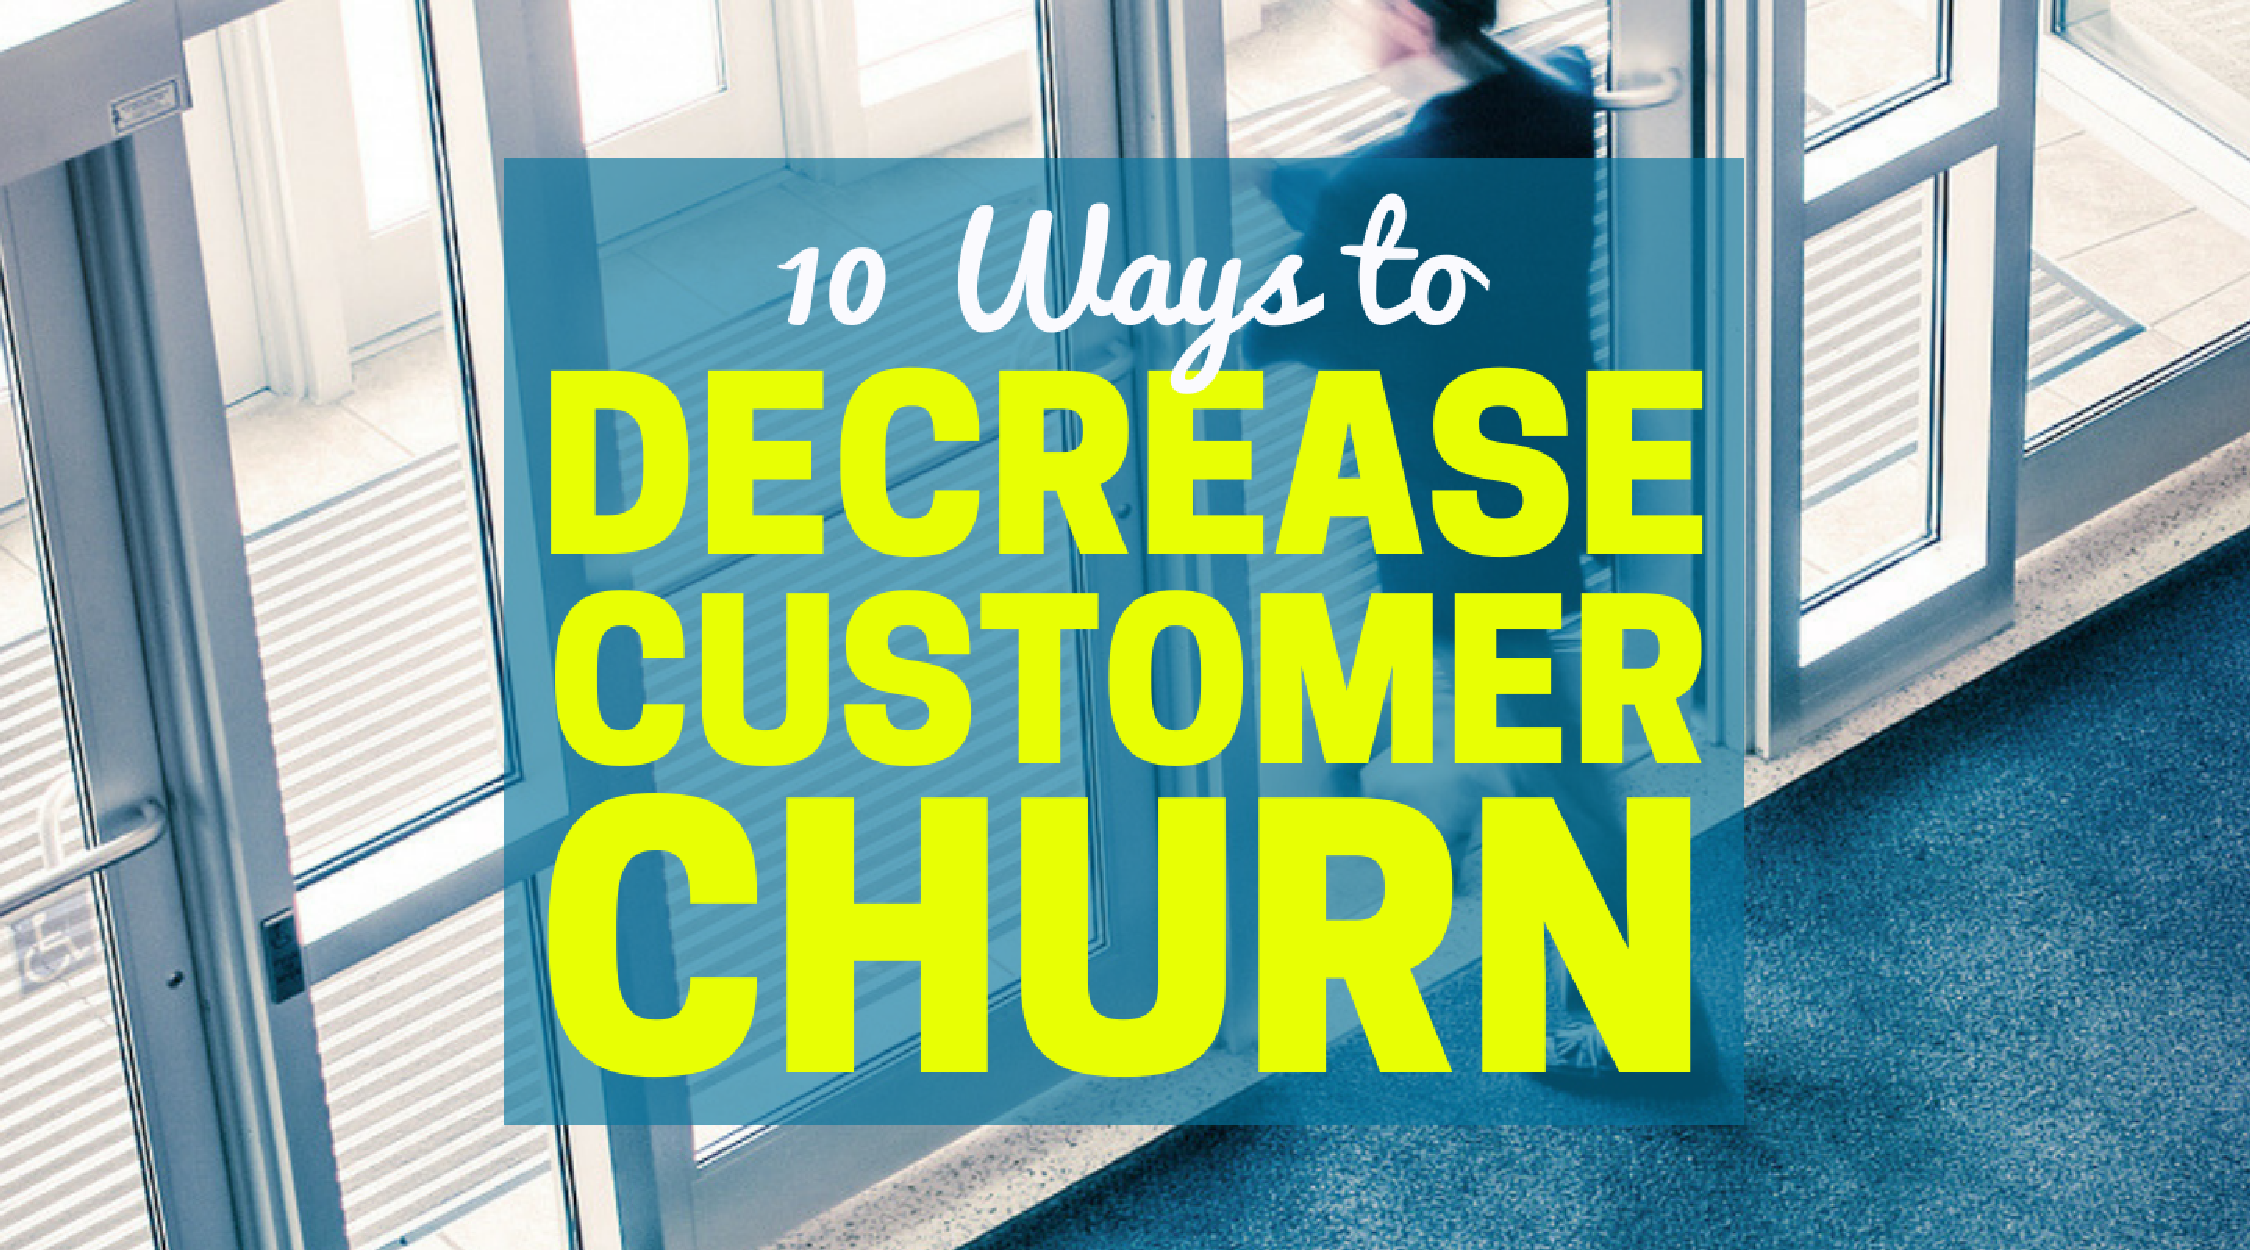 Decrease Customer Churn